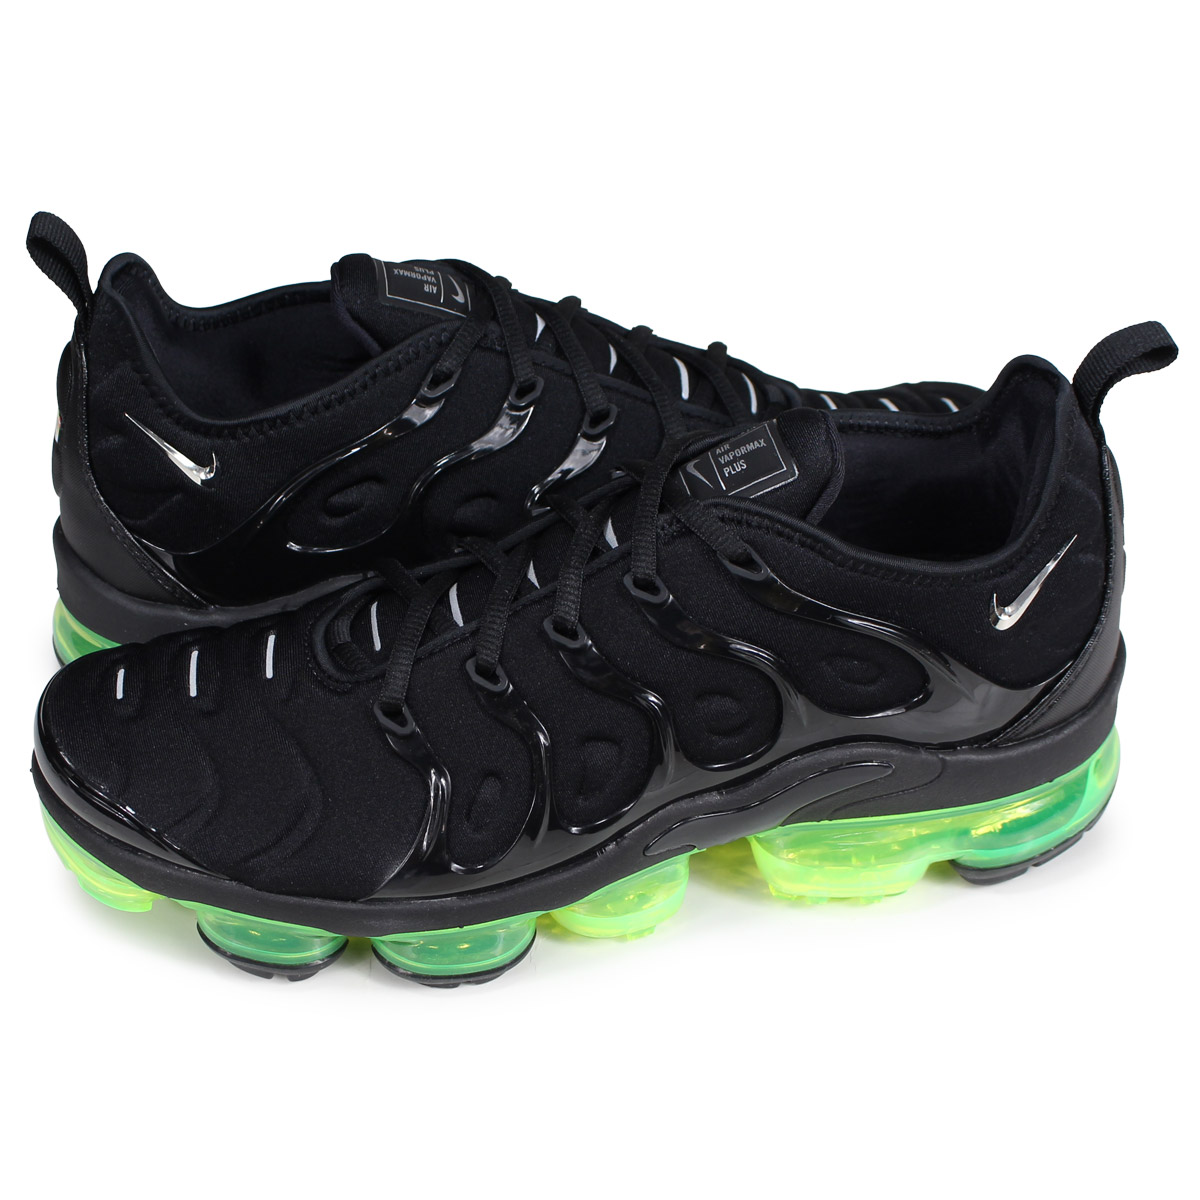 81909a8ab19 ALLSPORTS  Nike NIKE vapor max plus sneakers men AIR VAPORMAX PLUS ...